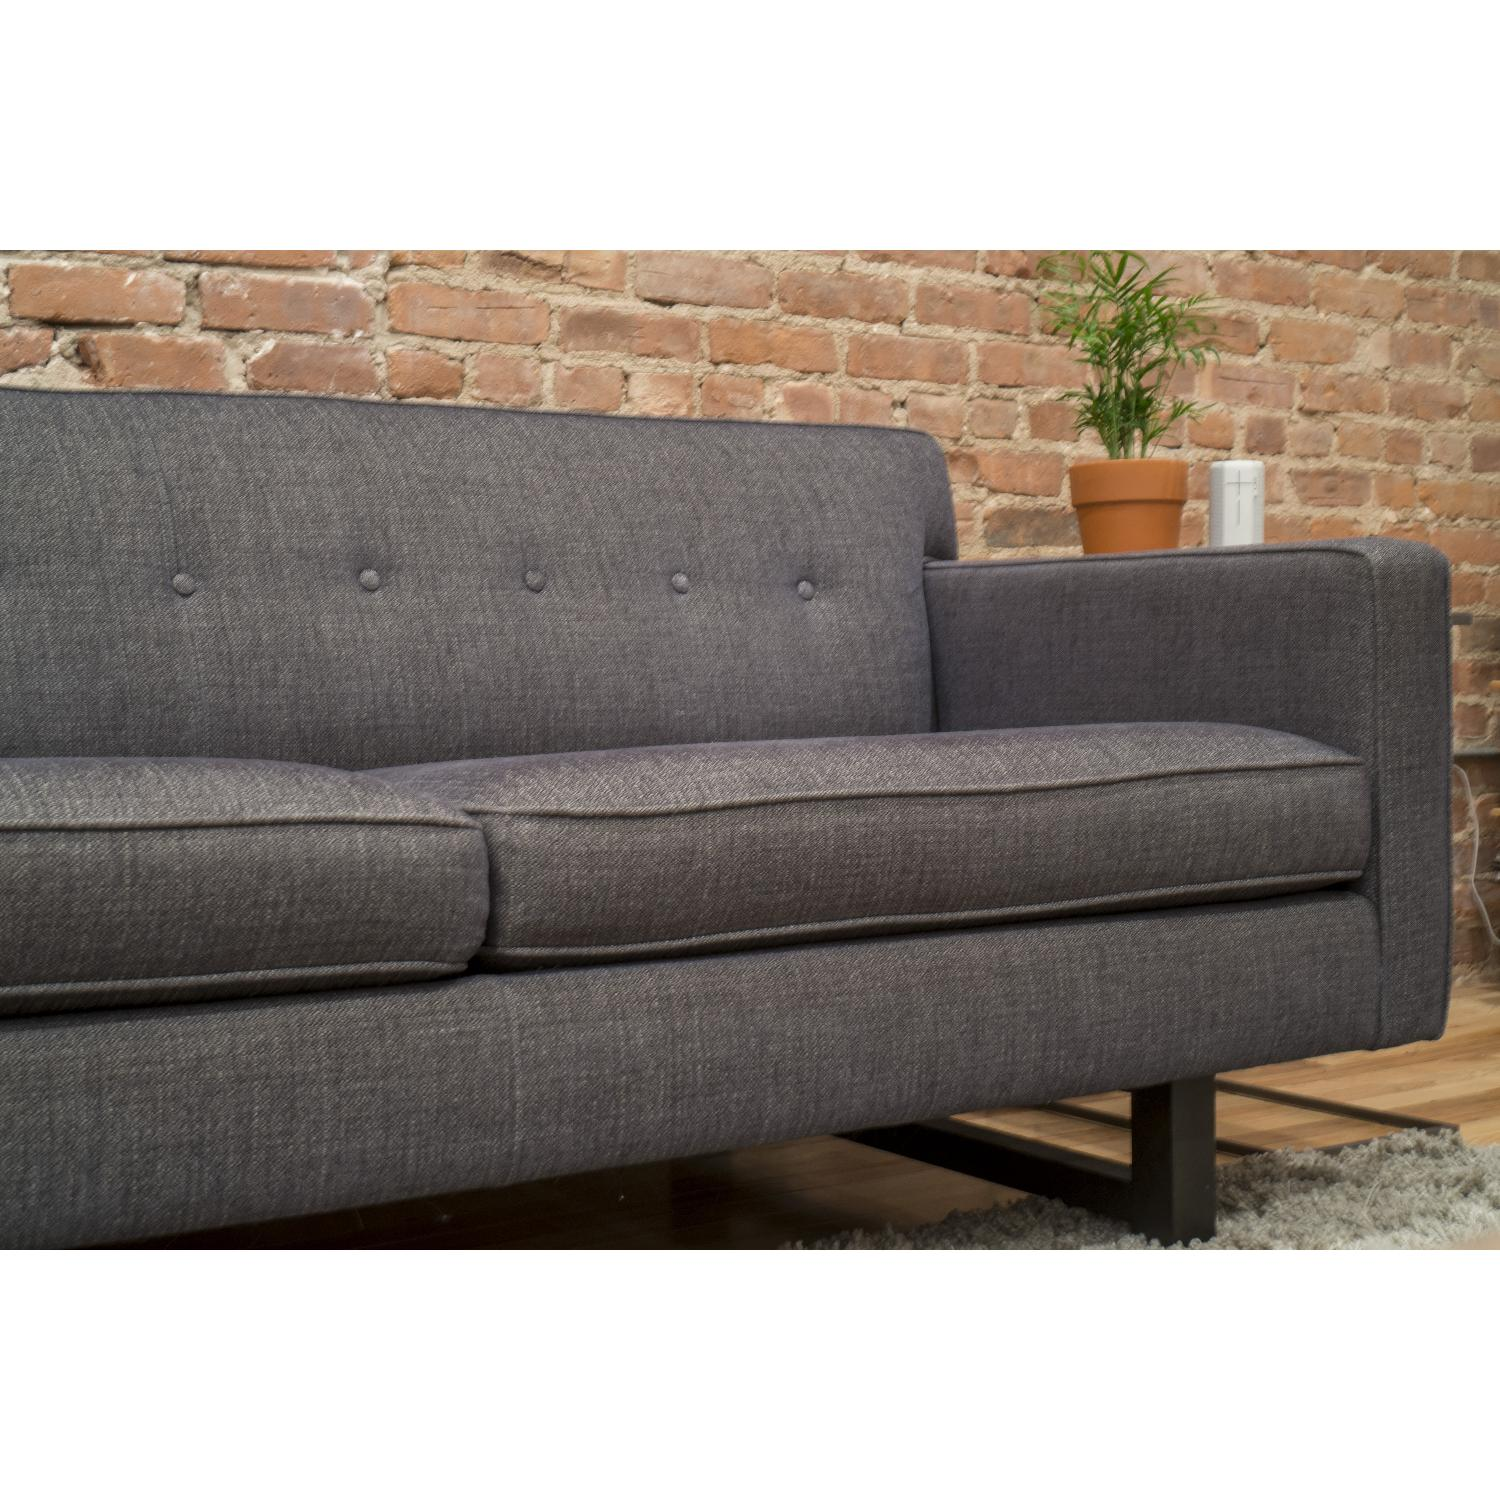 Room board andre ink blue sofa aptdeco for Room and board andre